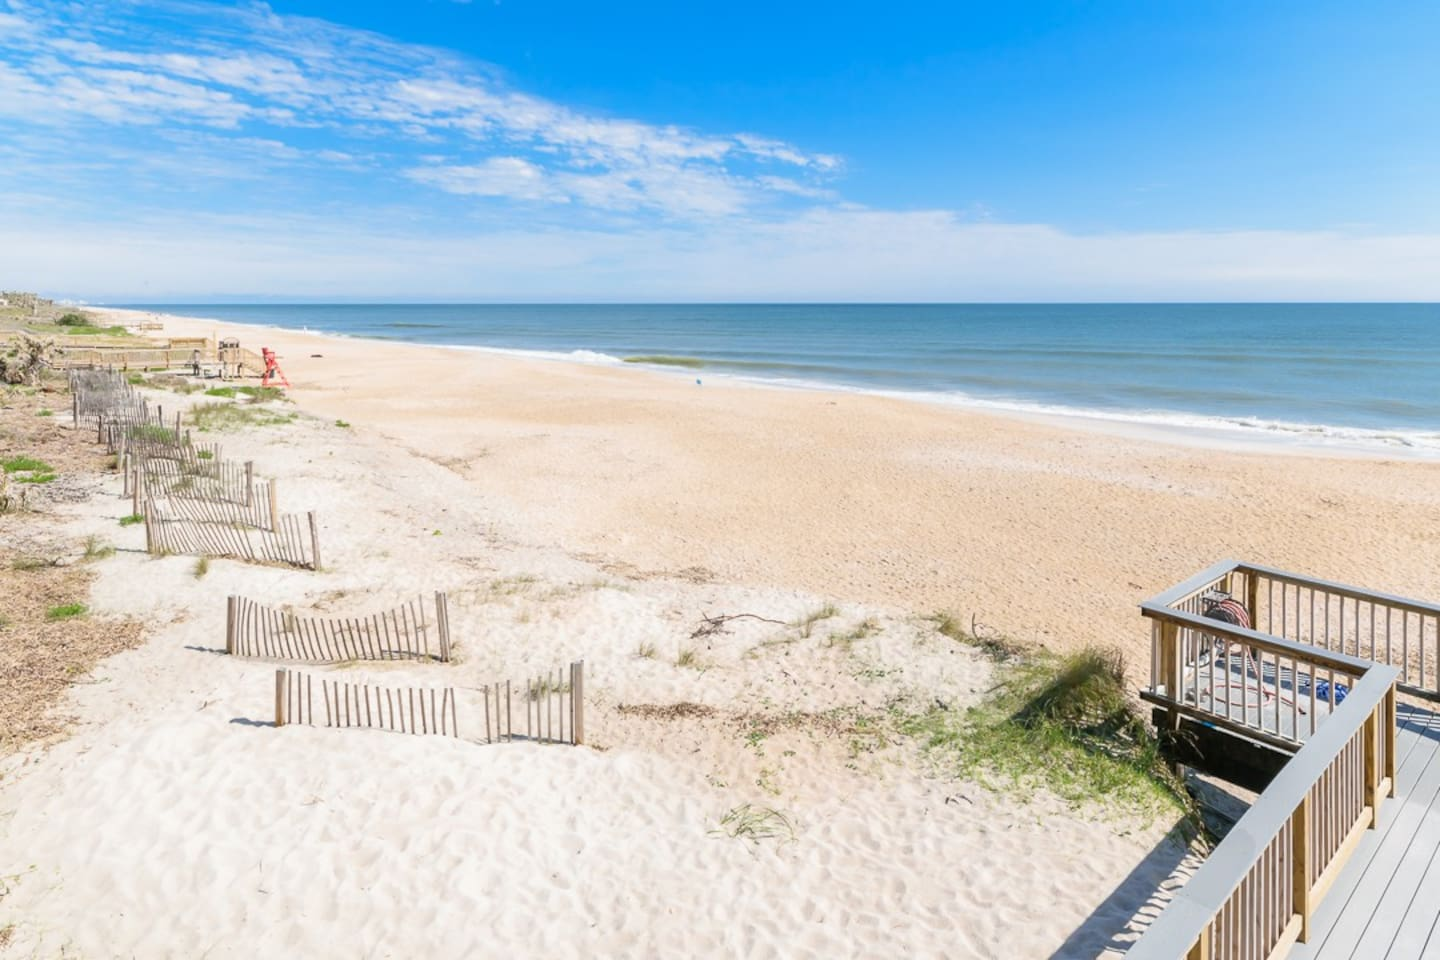 The beach is just half a block away from our charming ground floor, studio condo at Summer Place 652! - With a ground floor patio set among tropical foliage, 2 hidden Murphy beds, and all the location of Ponte Vedra you could ask for, it's your ideal vacation destination!